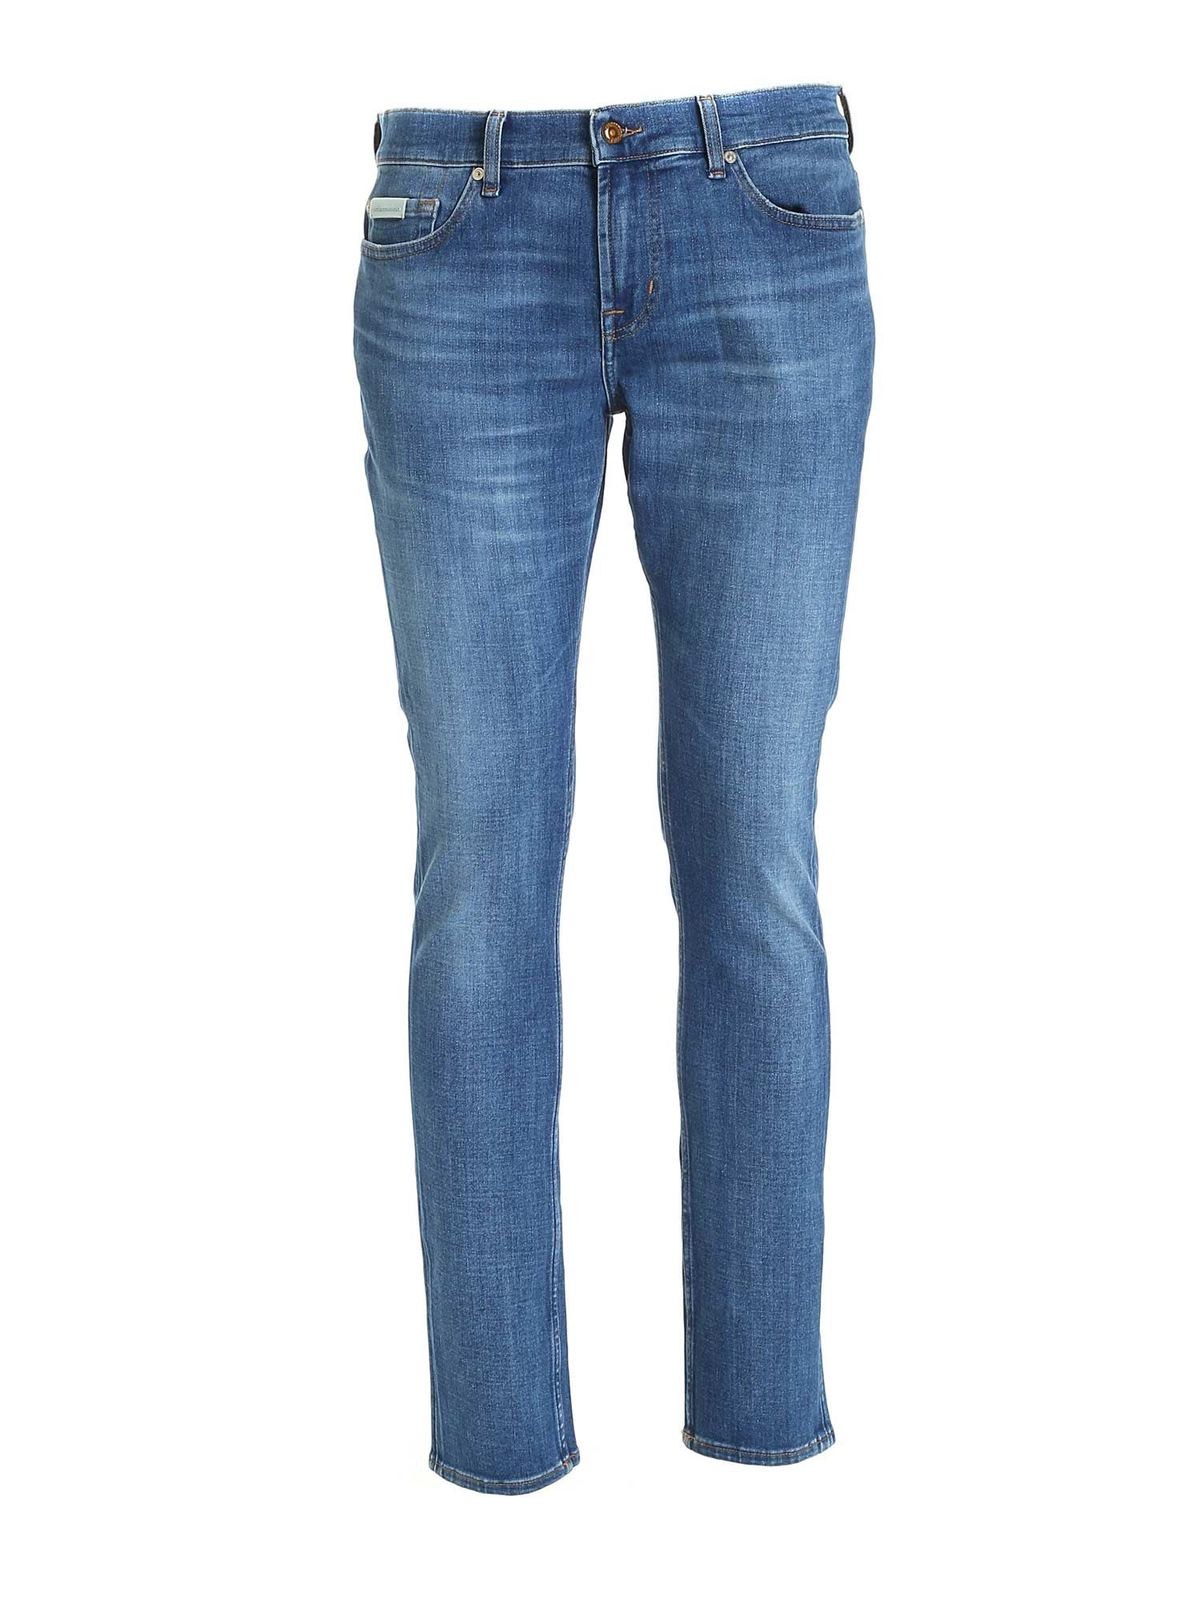 7 For All Mankind Ronnie Jeans In Blue